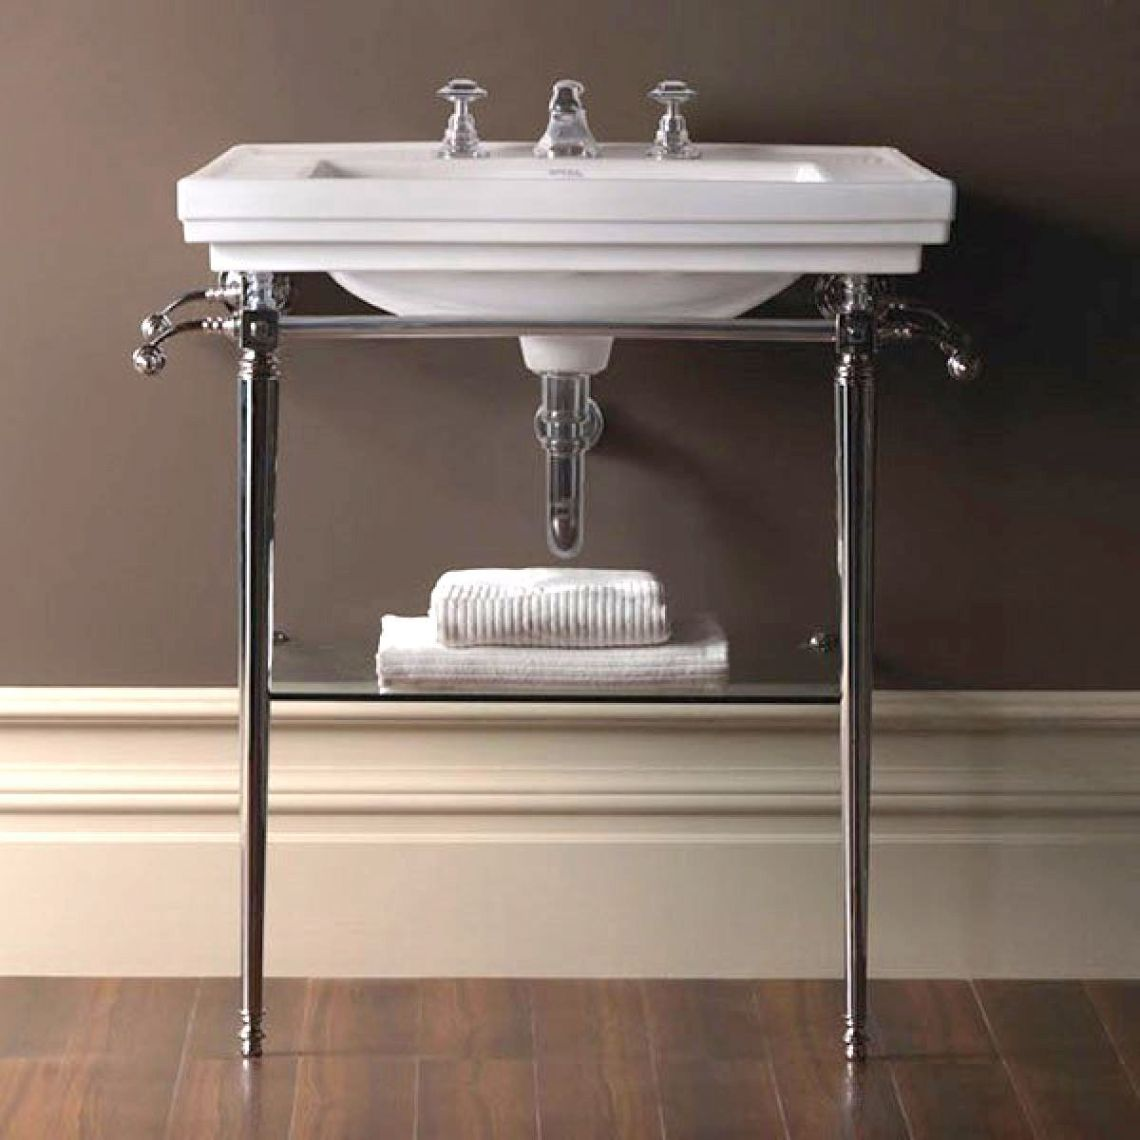 Image Result For Small Bathroom Sinks Uk